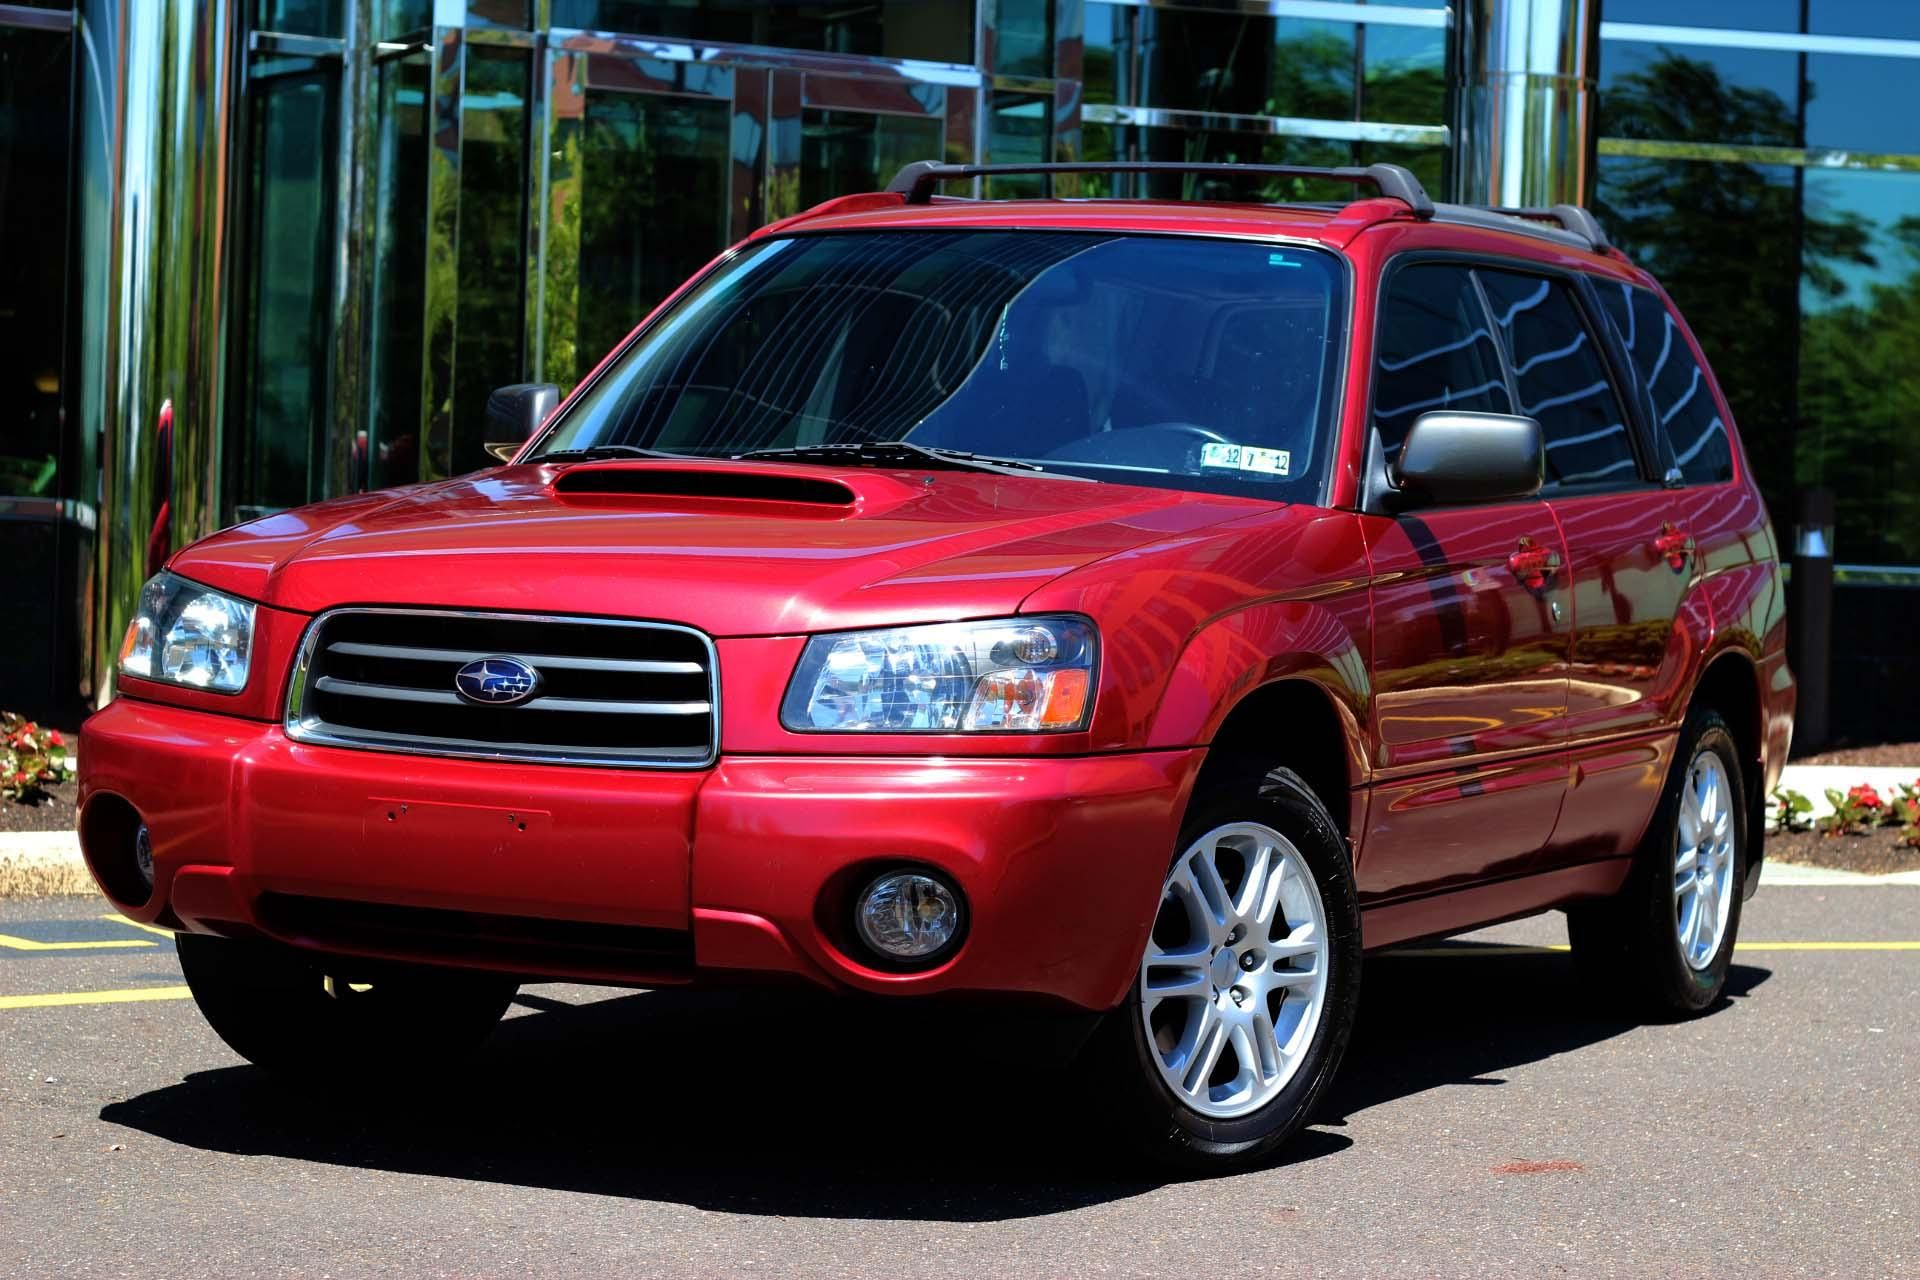 Check Out Customized SHIFT_5speed's 2004 Subaru Forester